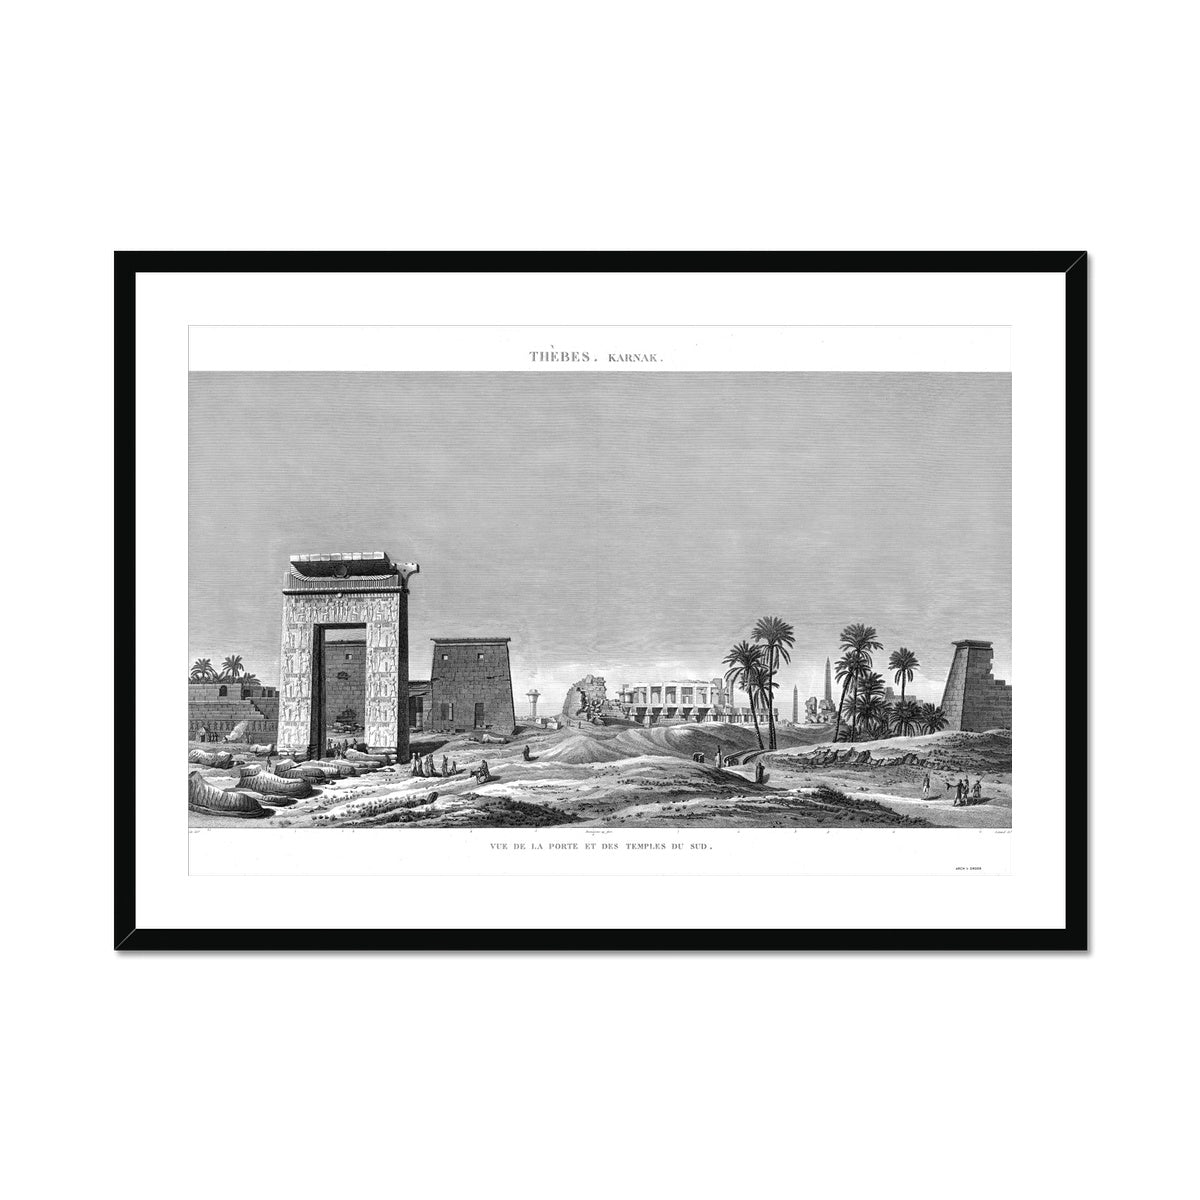 View of the Southern Gates and Temples - Karnak - Thebes Egypt -  Framed & Mounted Print